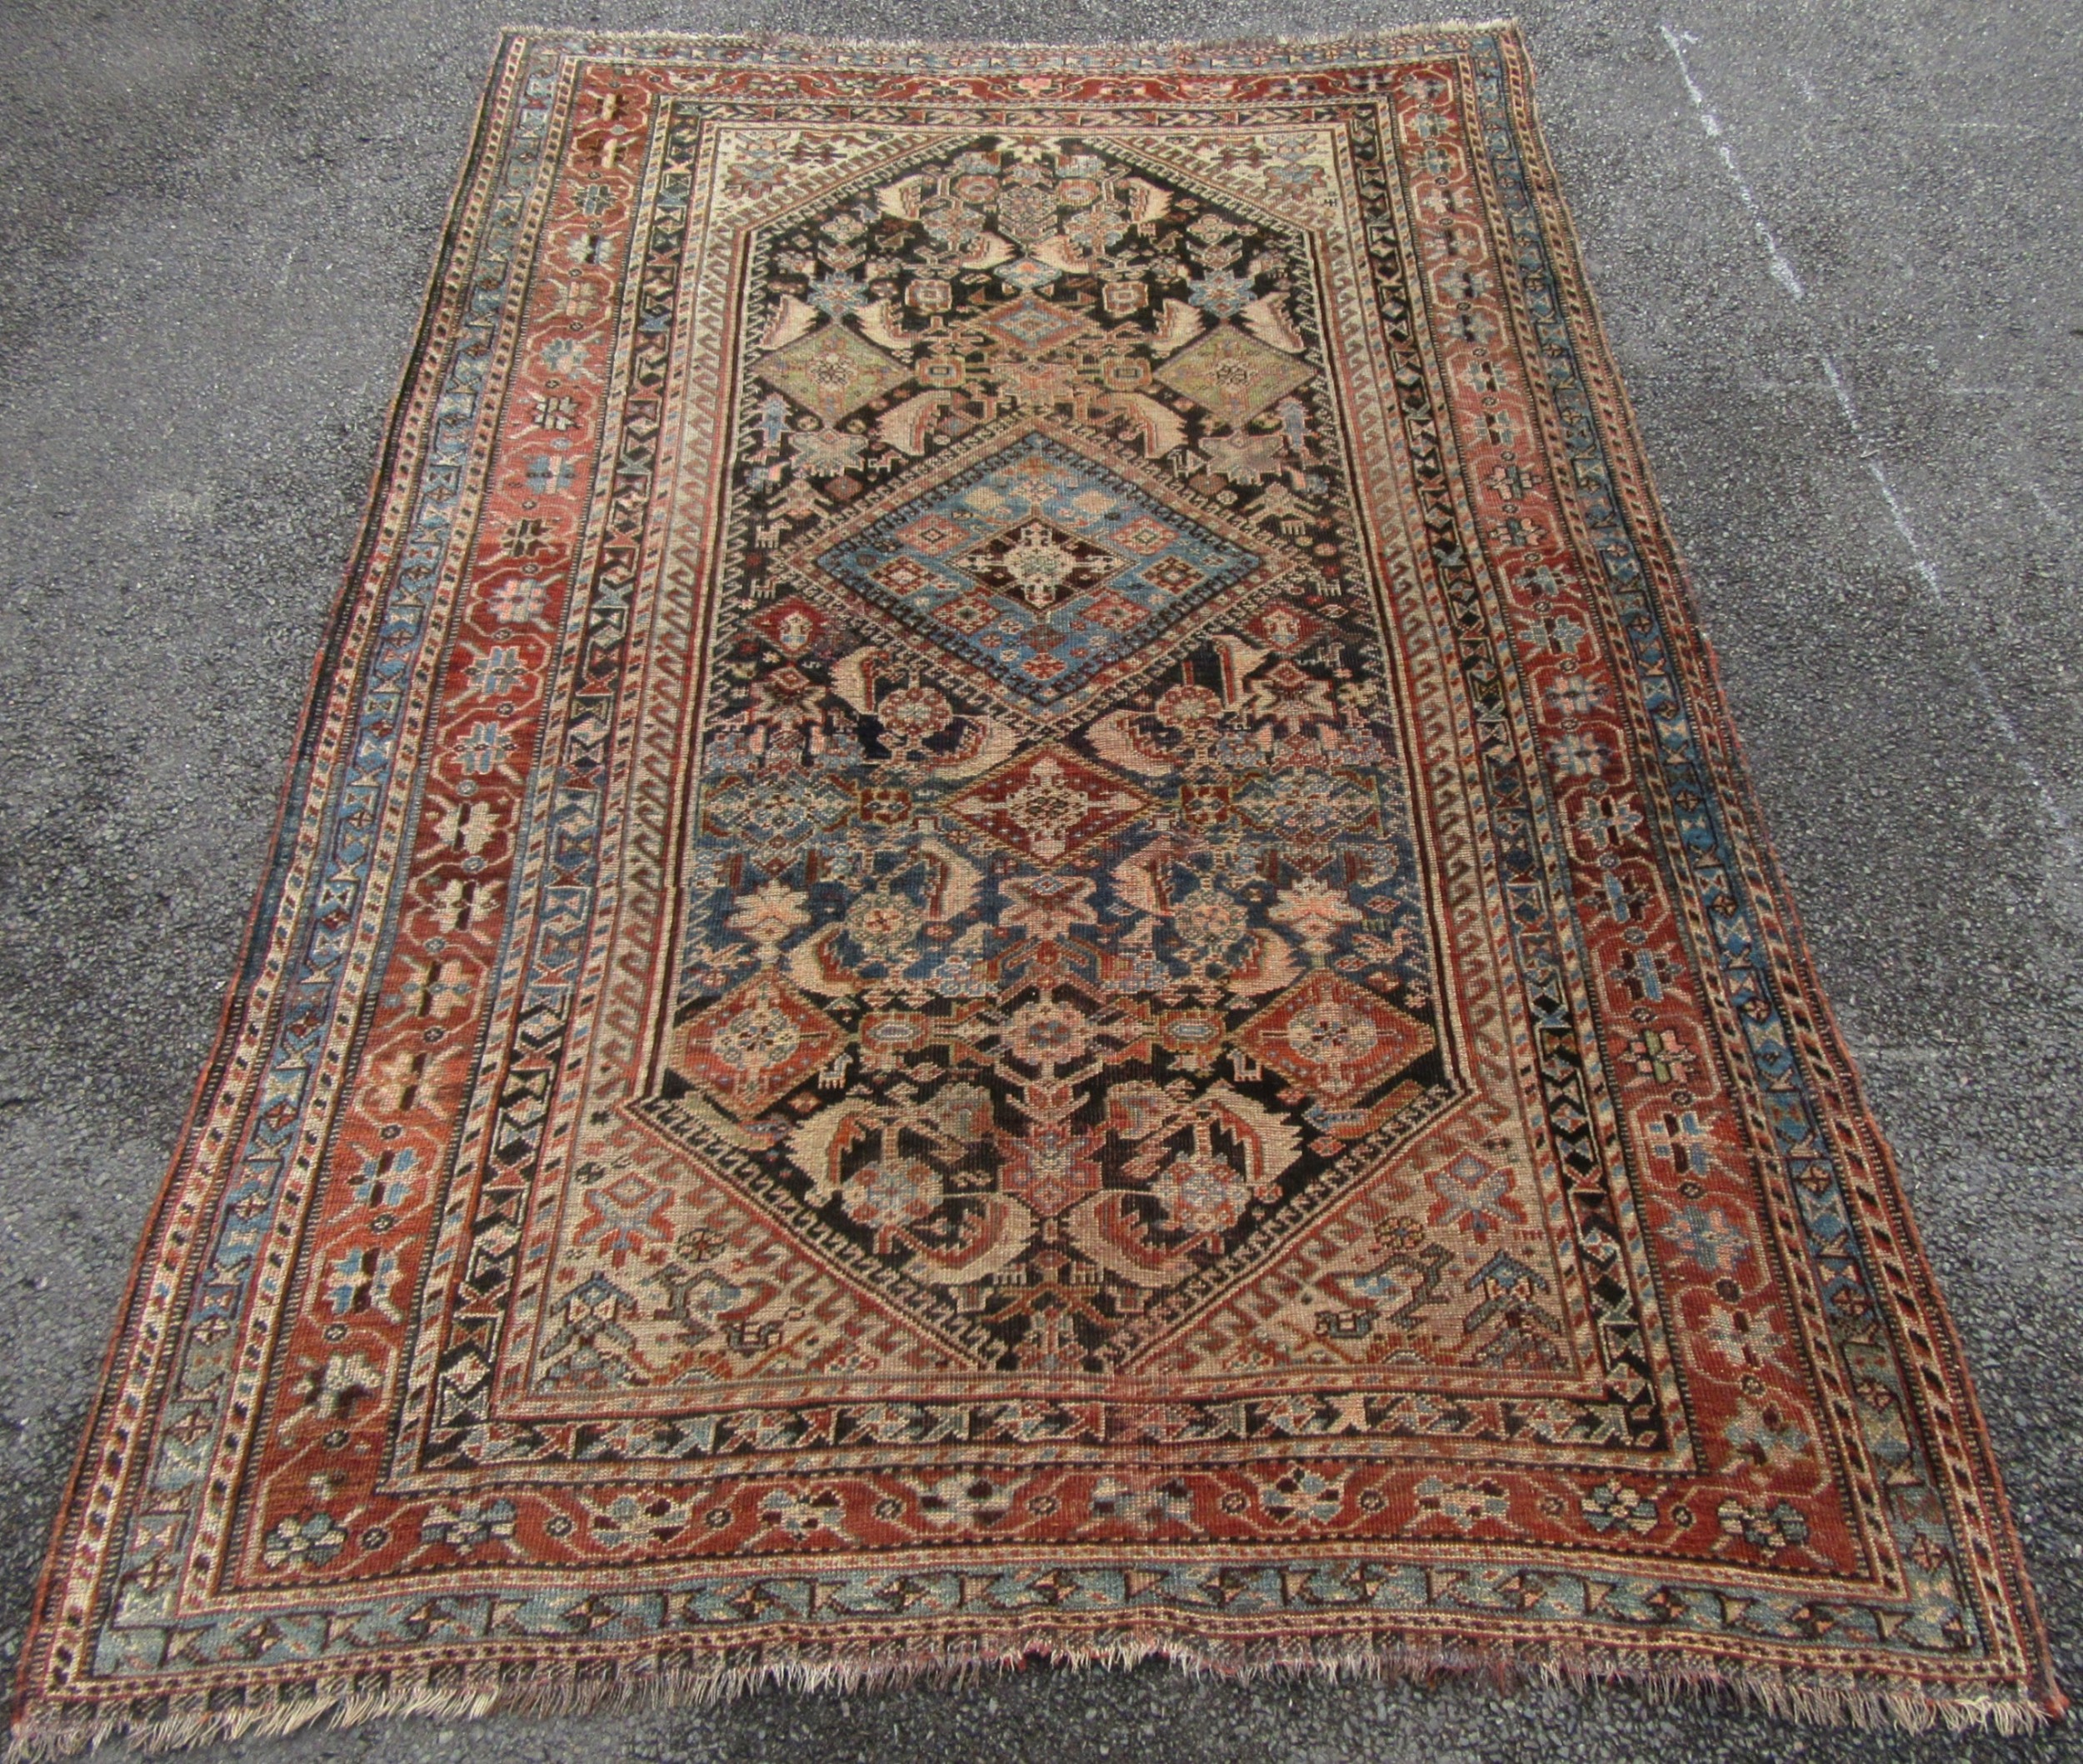 antique south west persian fars qashqai tribal rug great moody look with animals birds